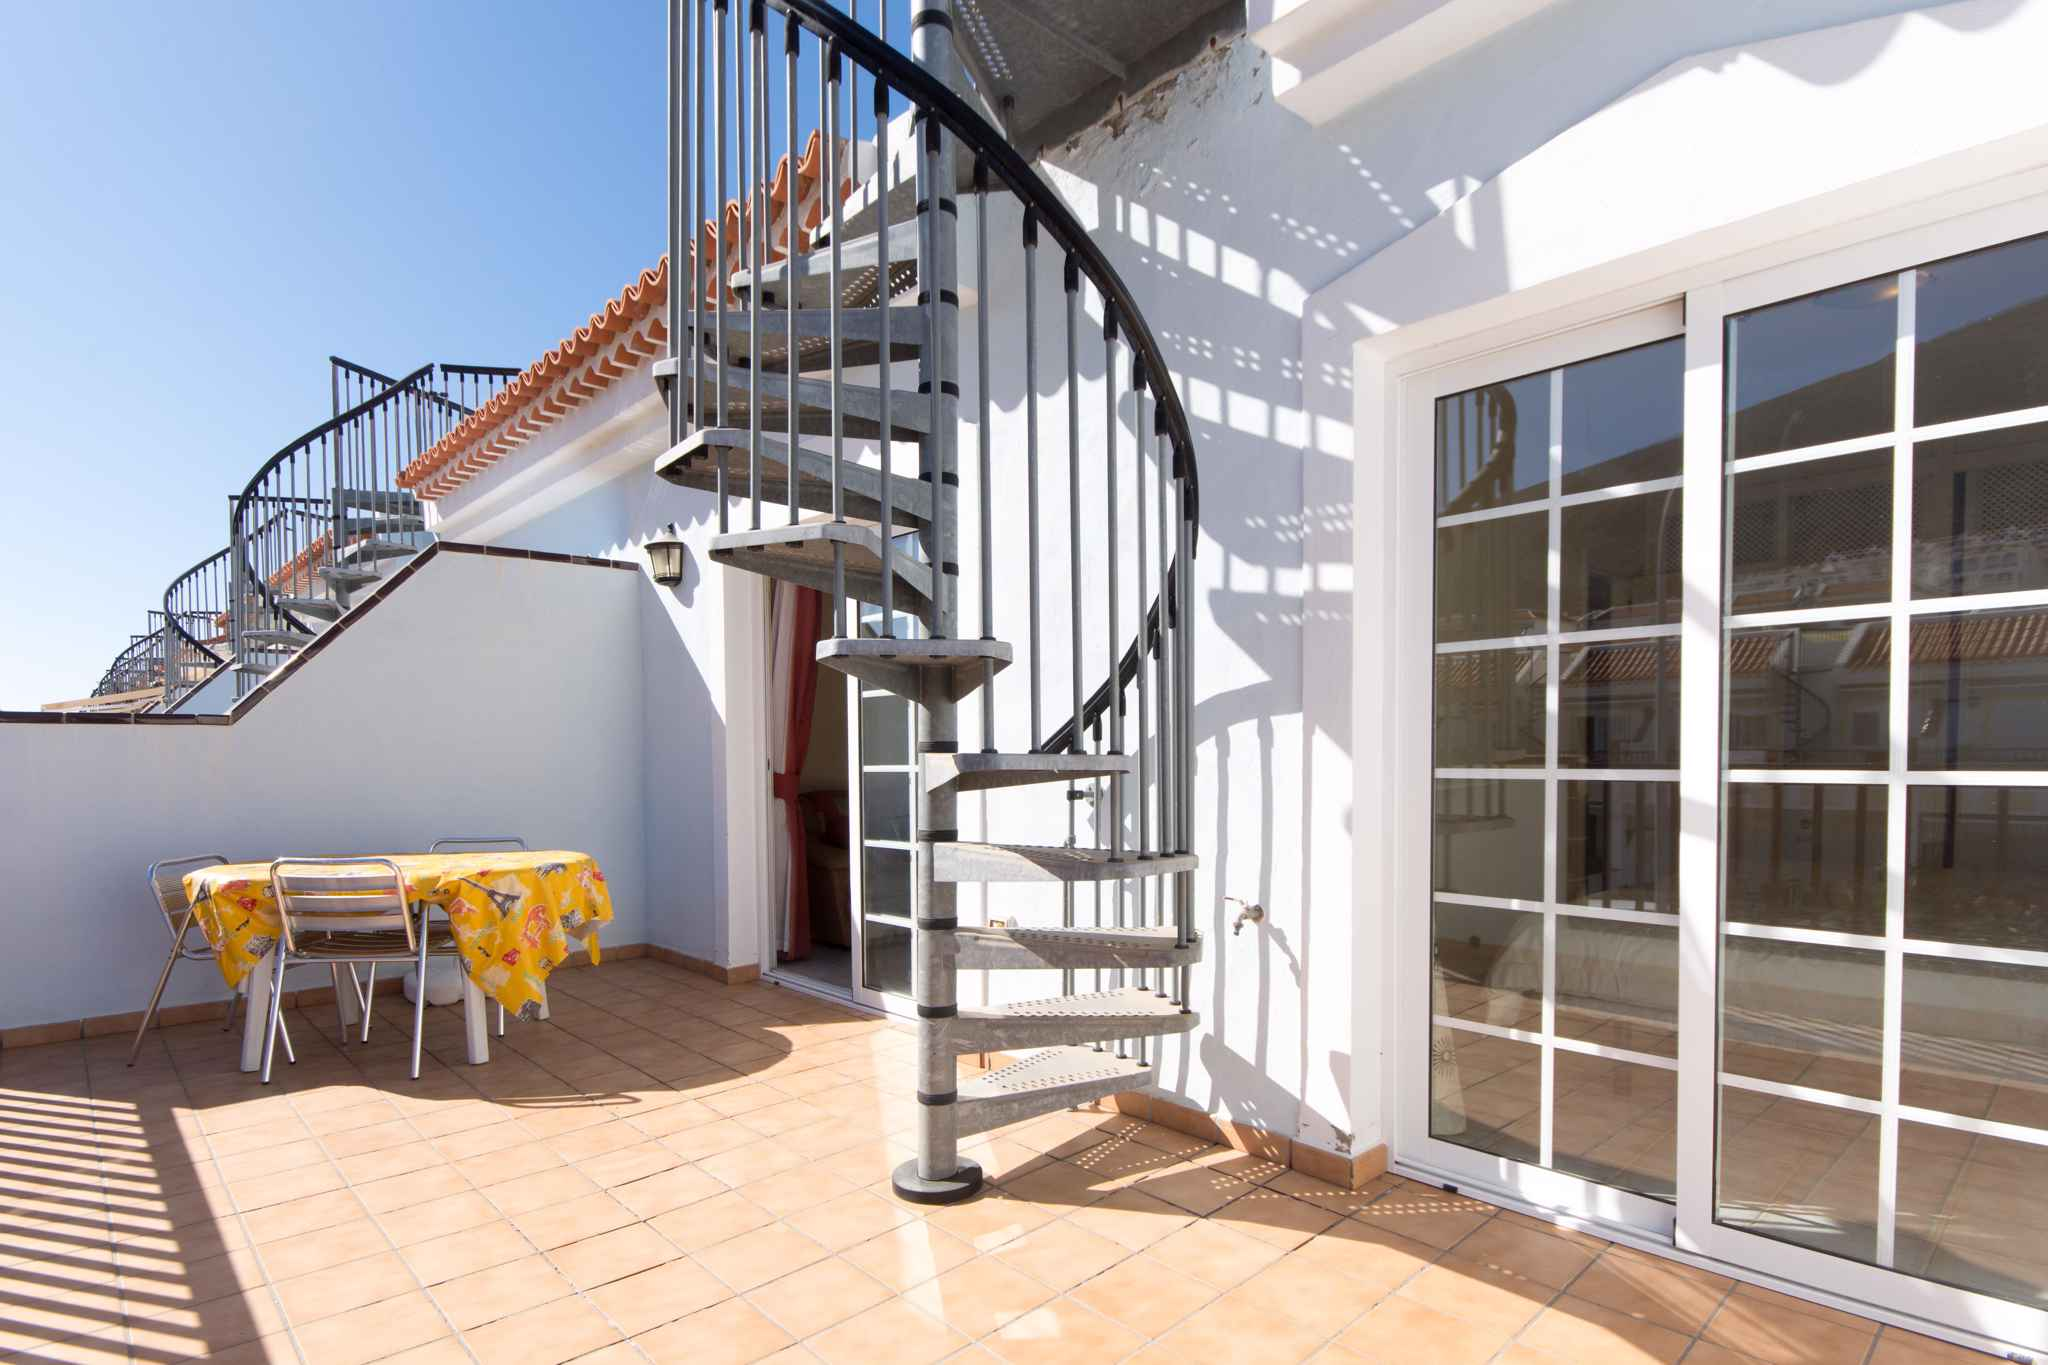 Holiday apartment mit Pool in Ferienanlage (2382979), Los Cristianos, Tenerife, Canary Islands, Spain, picture 4